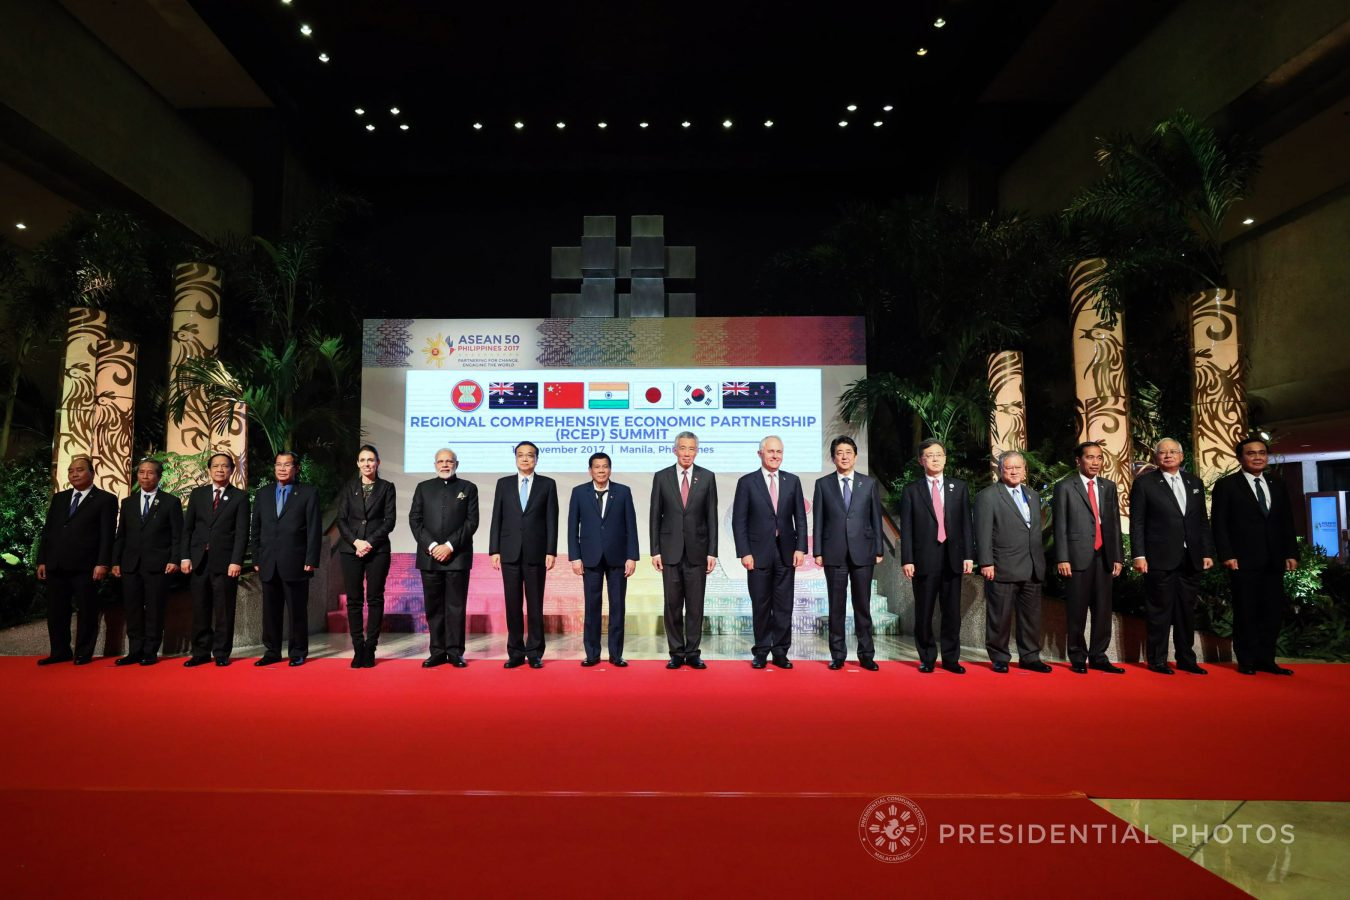 ASEAN aims to wrap up RCEP deal in 2018